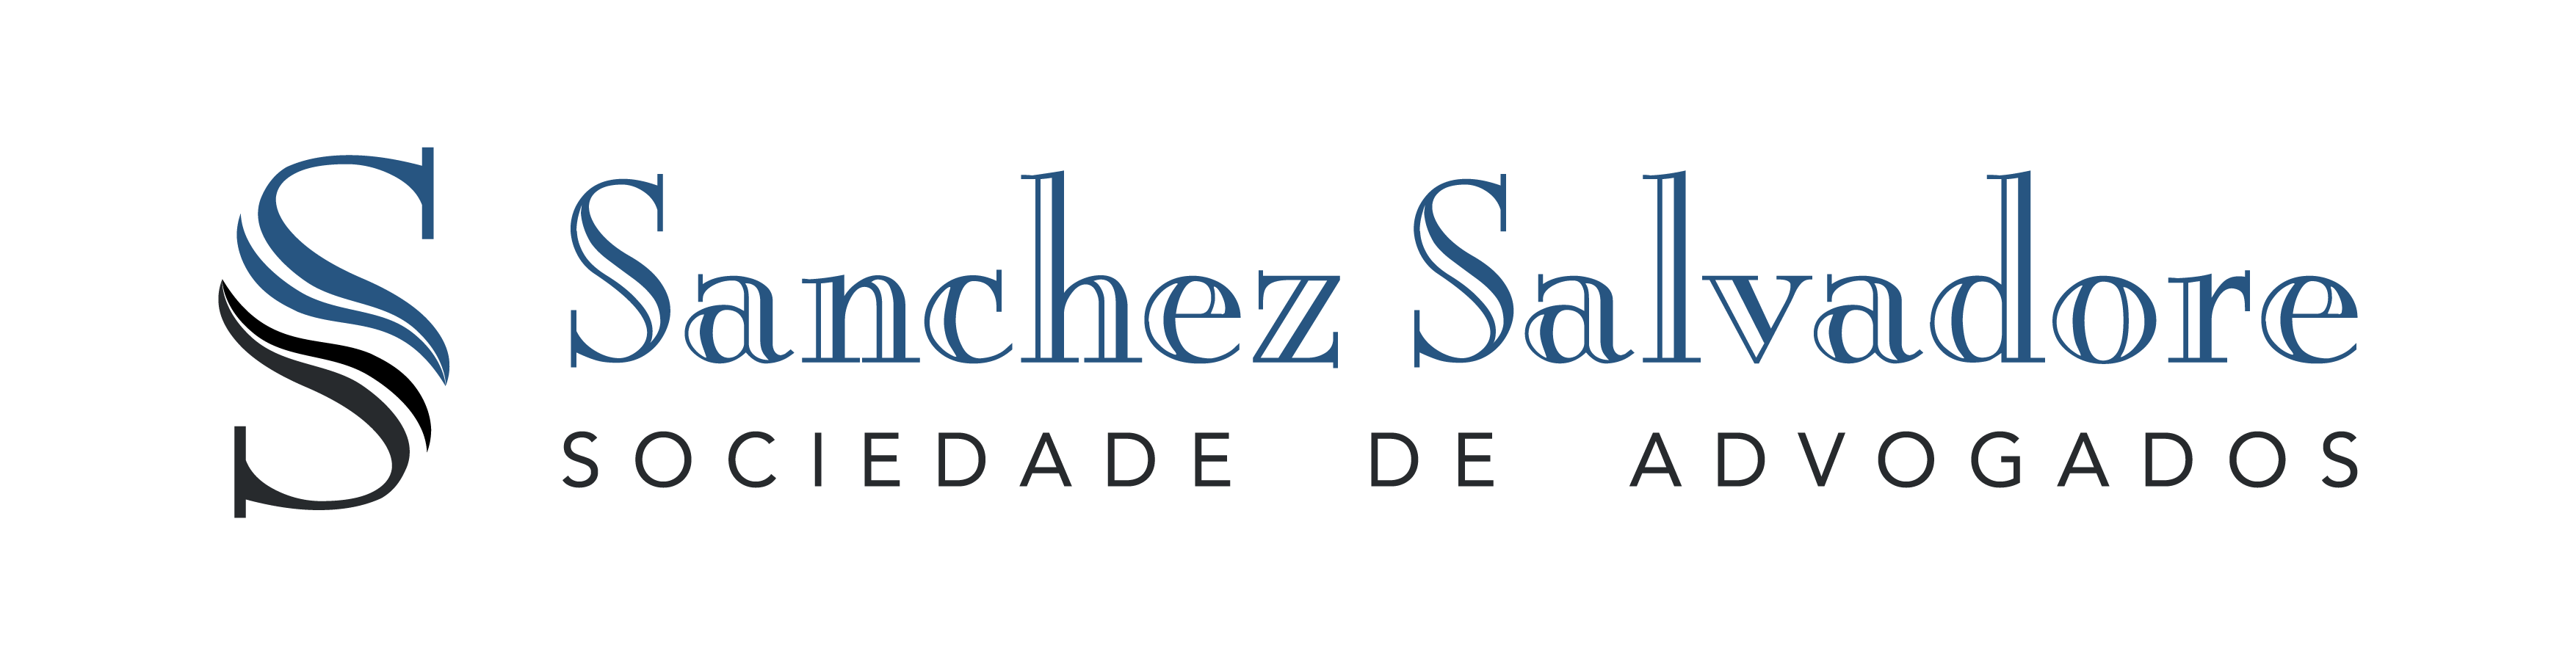 Sanchez Salvadore